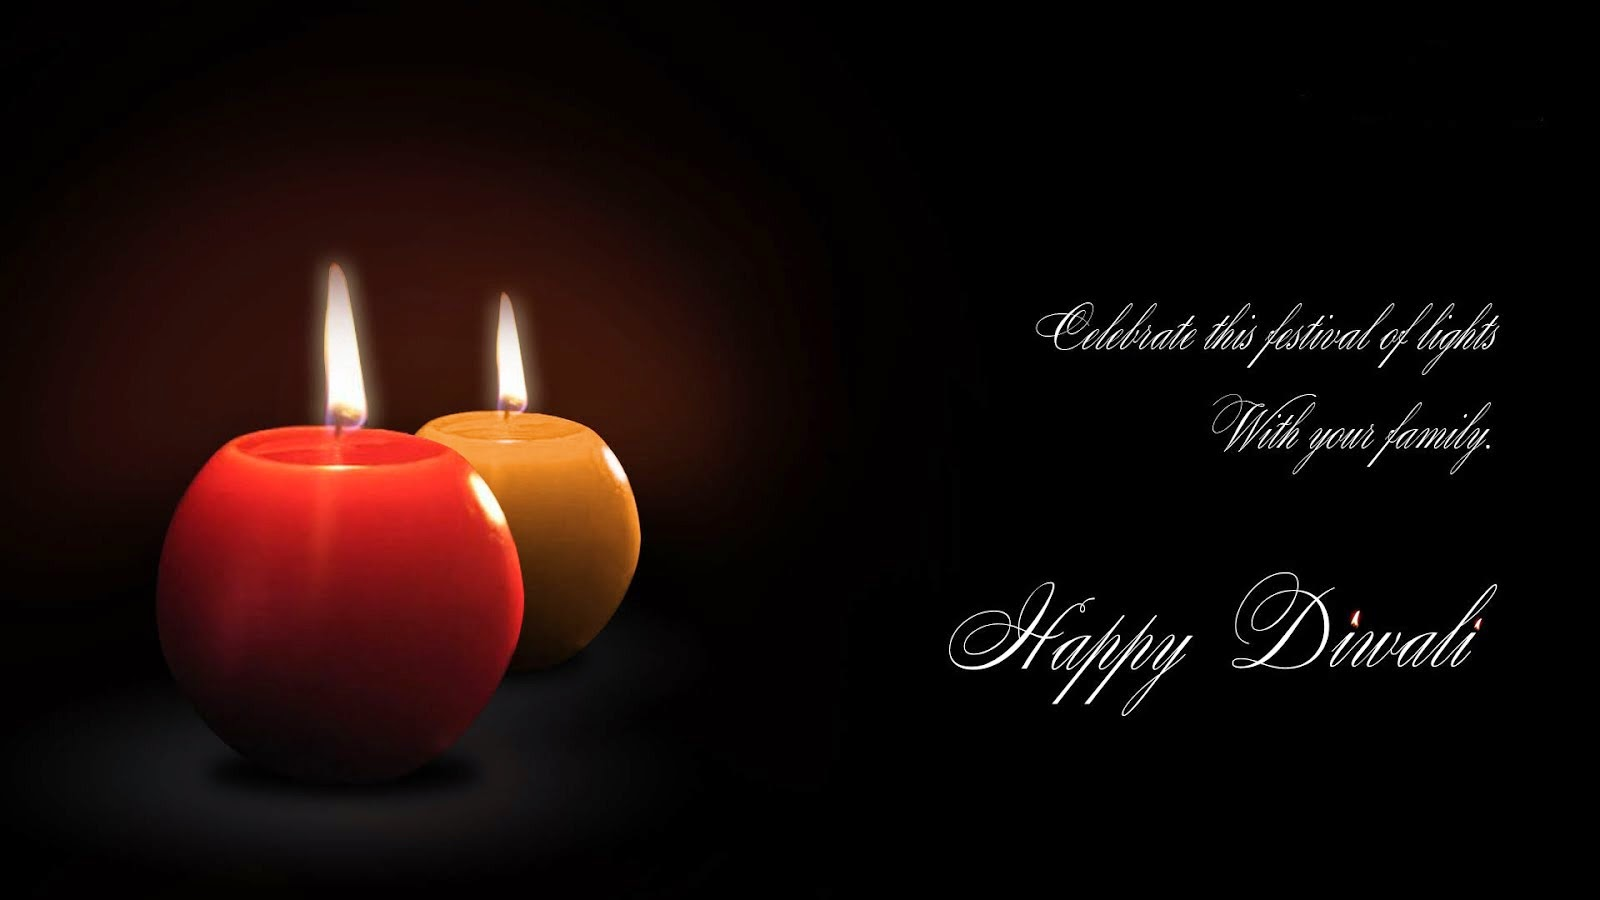 happy diwali 2014 festival wallpapers hd wallpapers